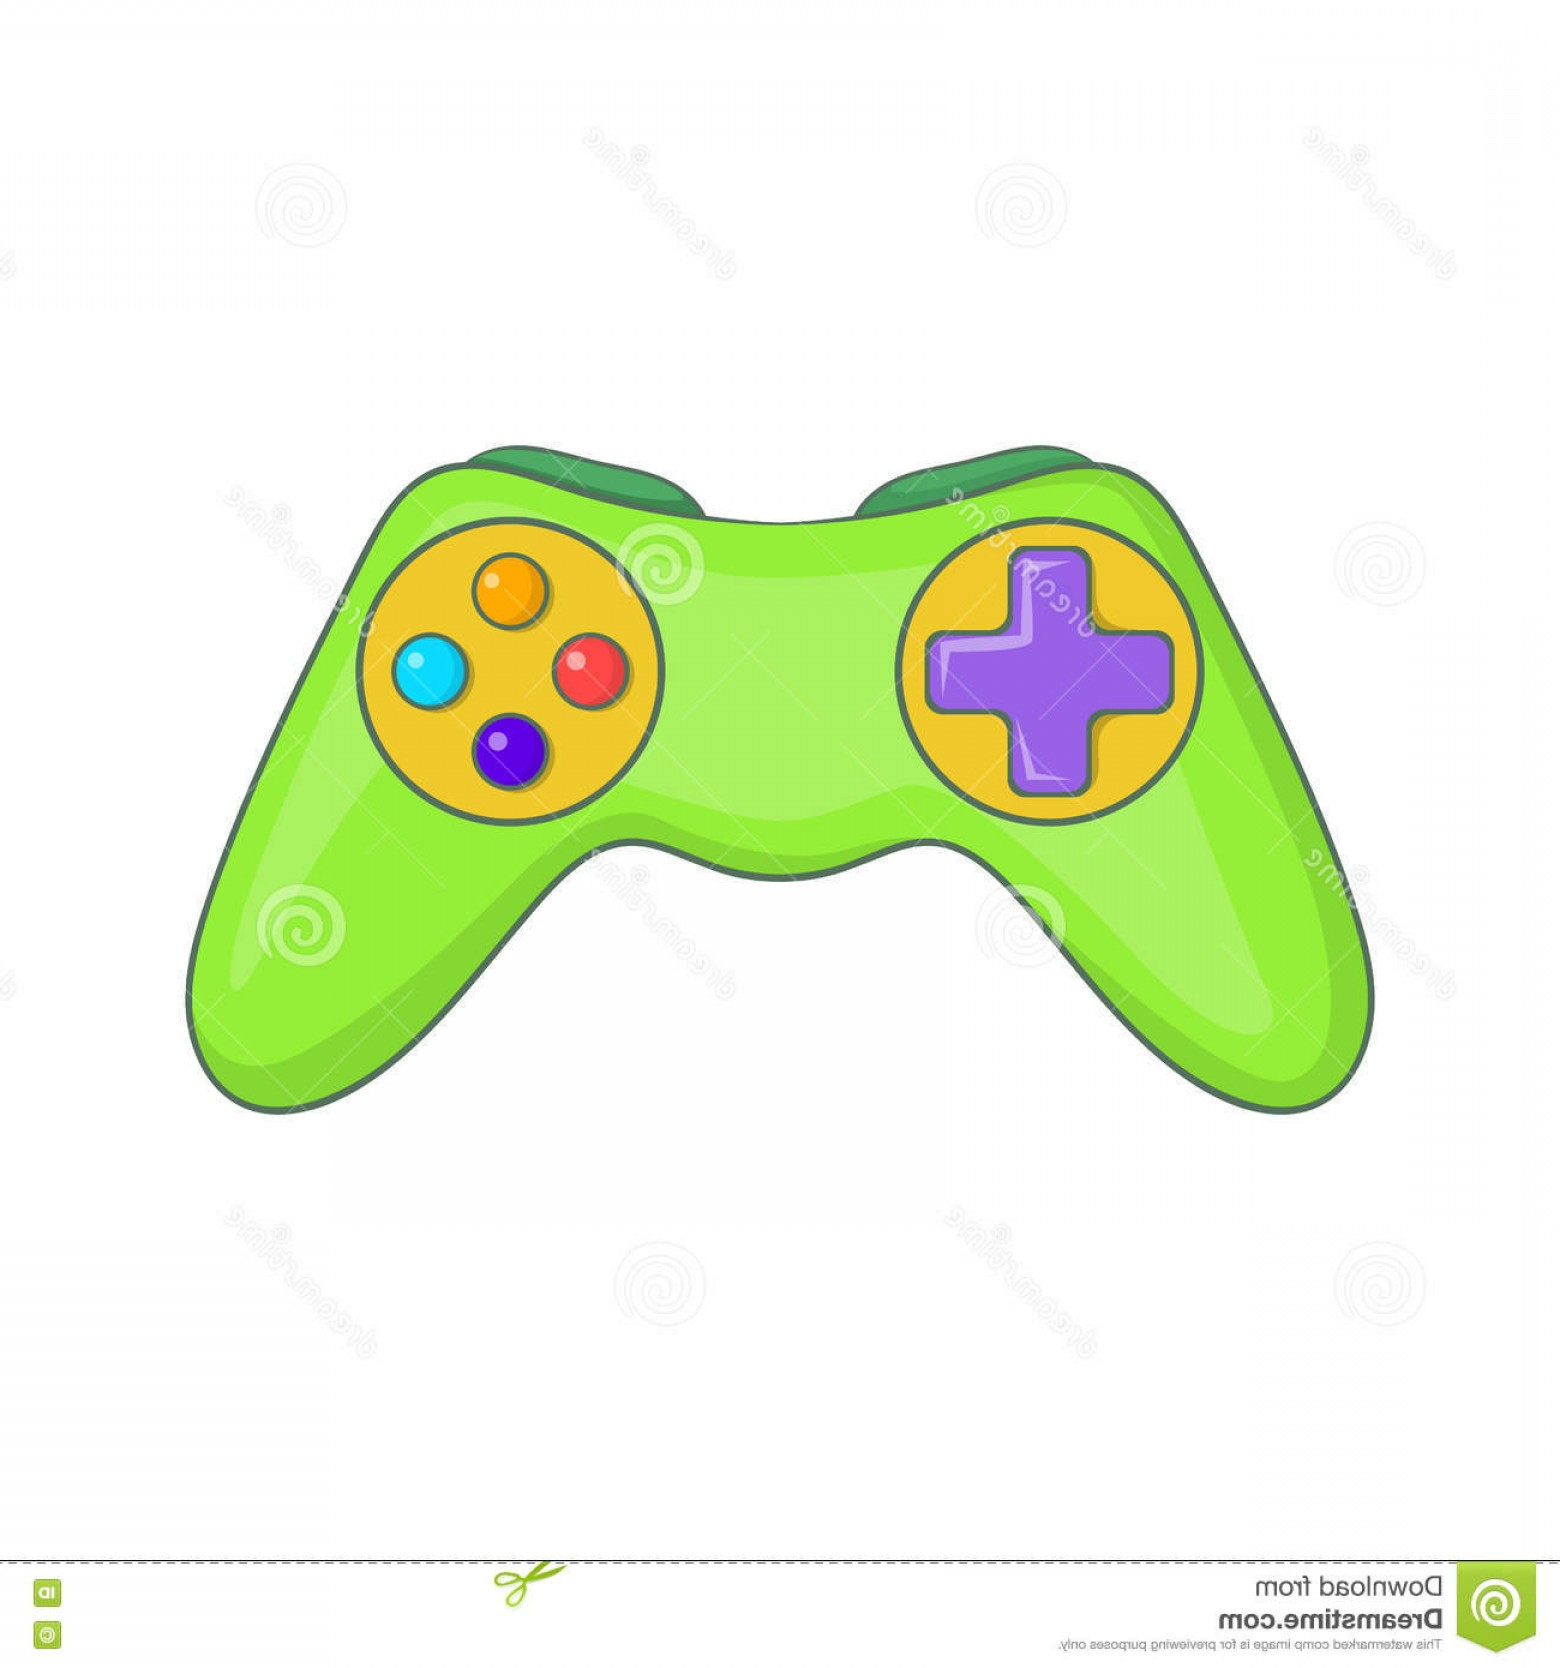 Xbox Game Controller Vector: Stock Illustration Game Controller Icon Cartoon Style Illustration Vector Web Design Image